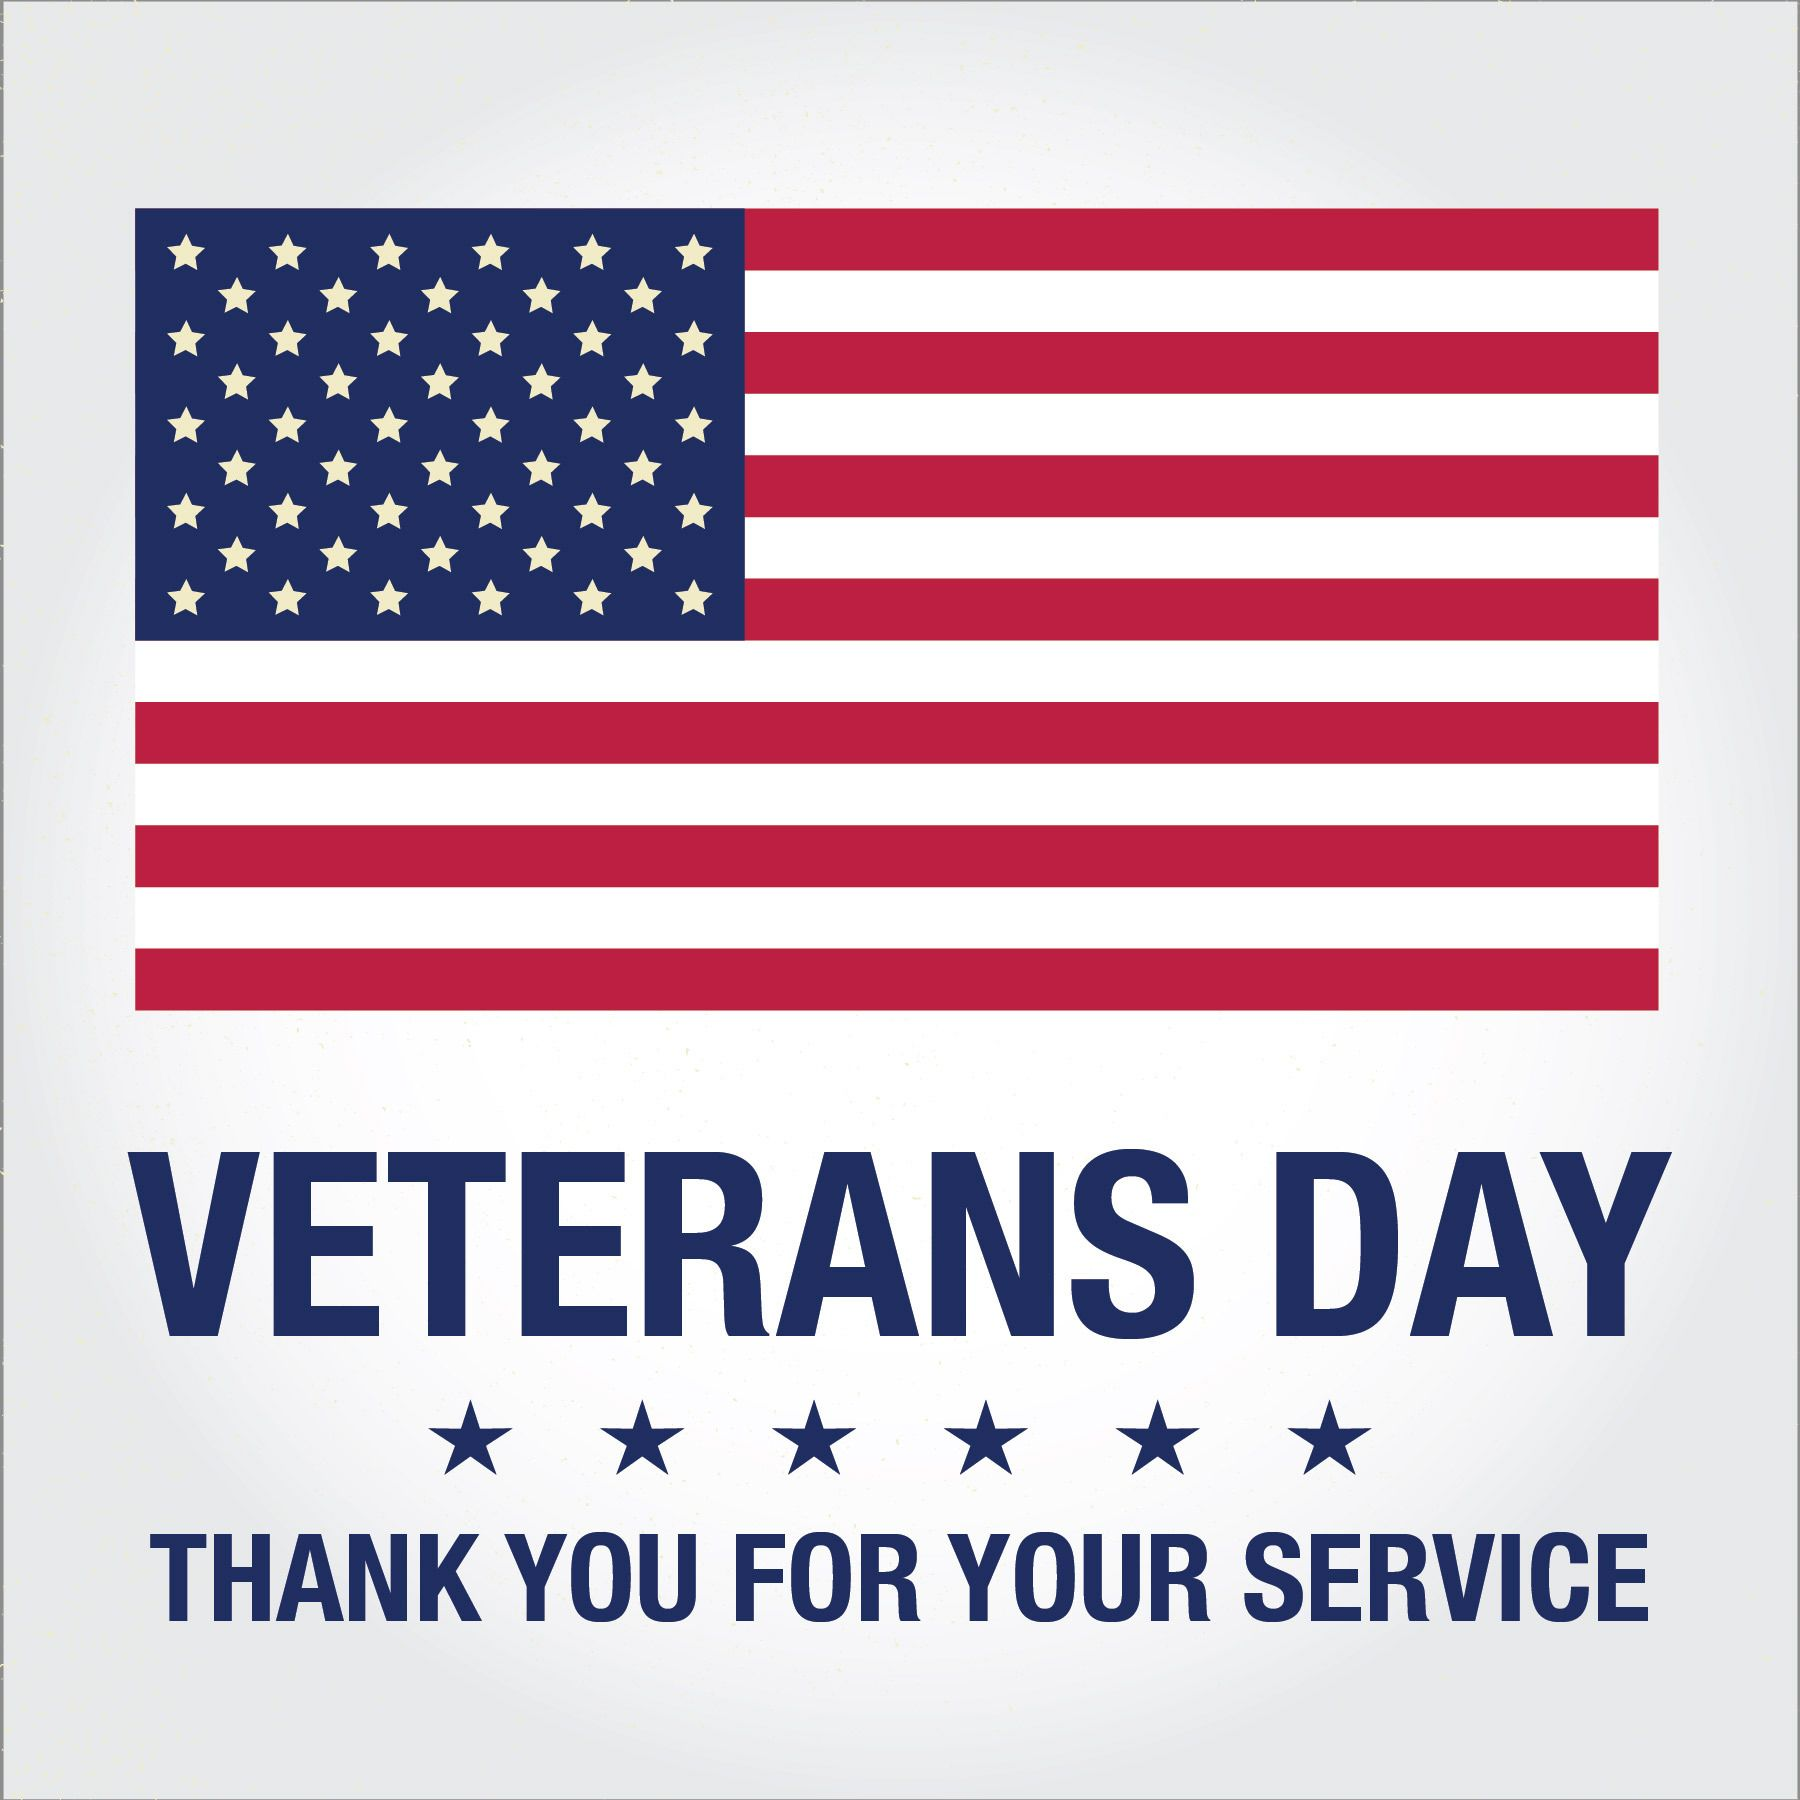 We Honor And Give Special Thanks All Our Veterans For Their